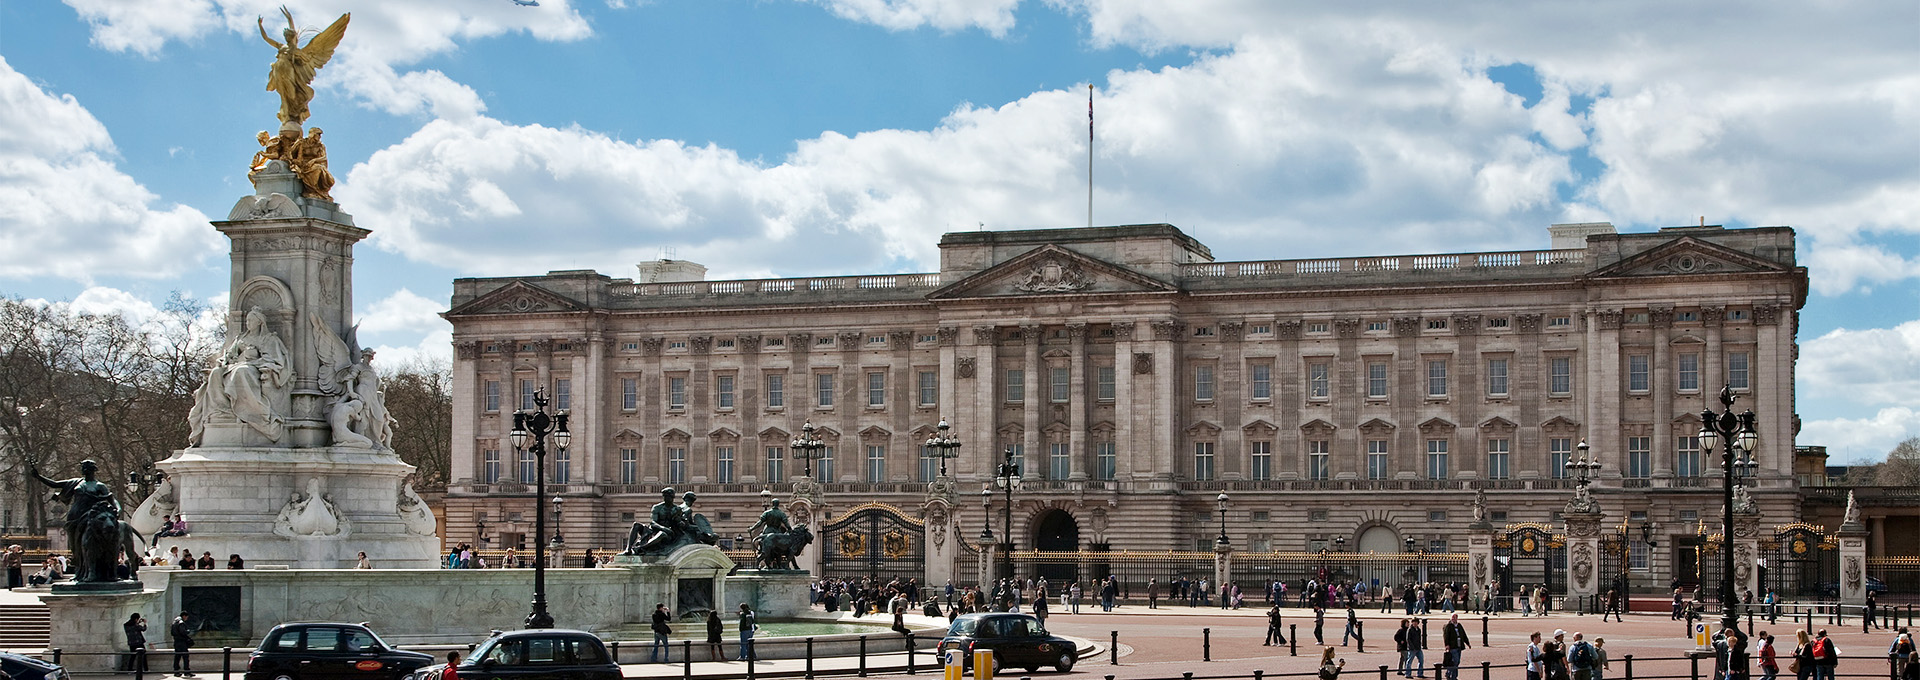 Discover London - VIP tours